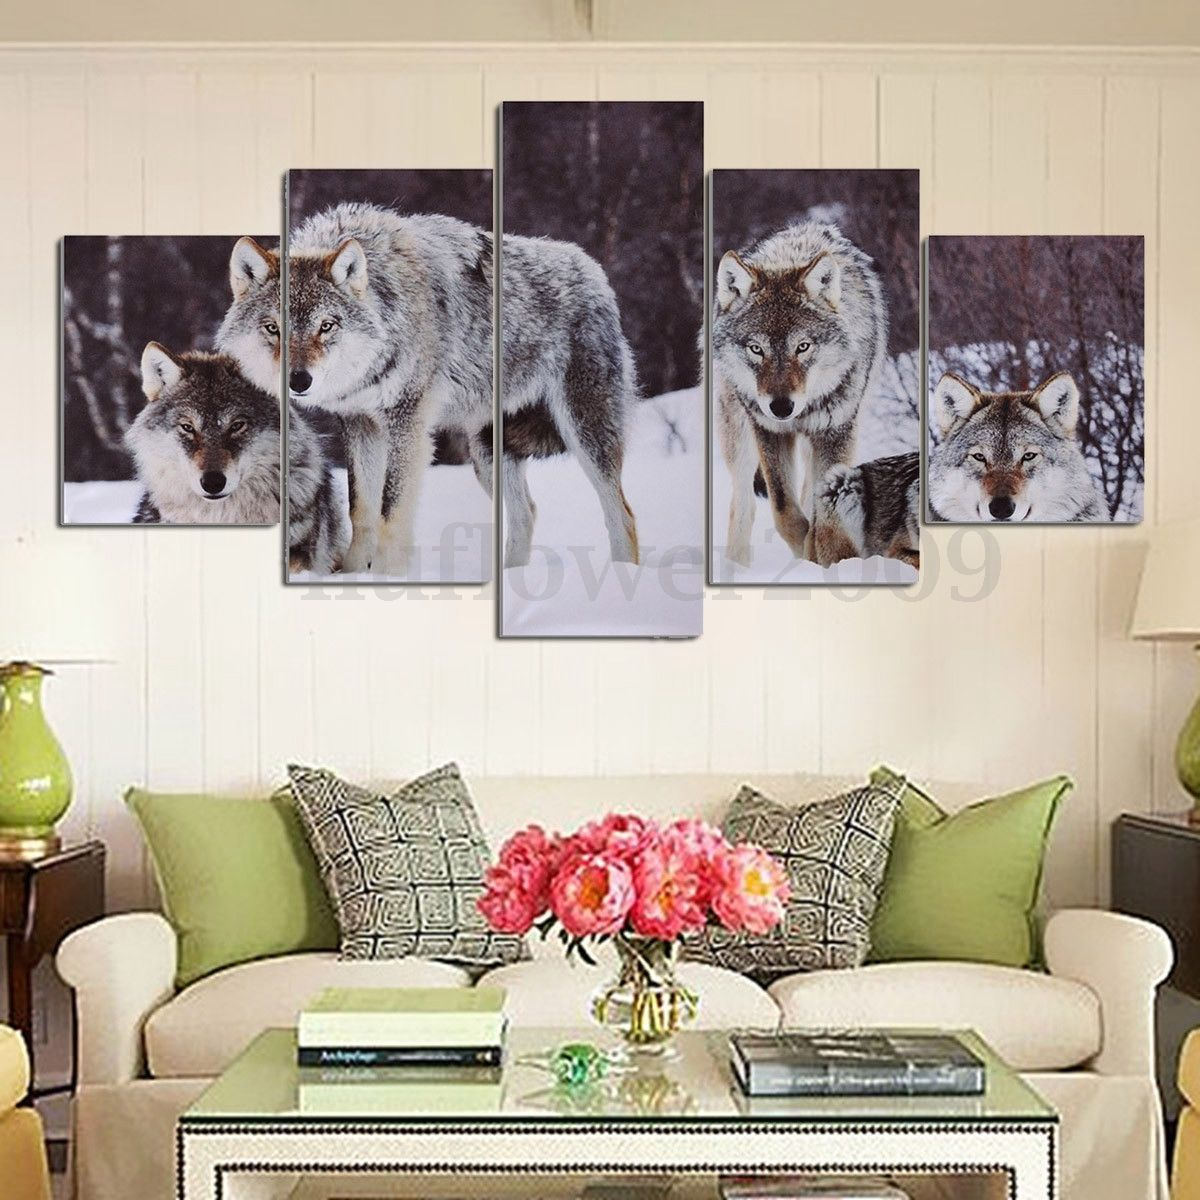 Wall Decor And More 5pcs wolf snowfield canvas picture modern art unframed painting